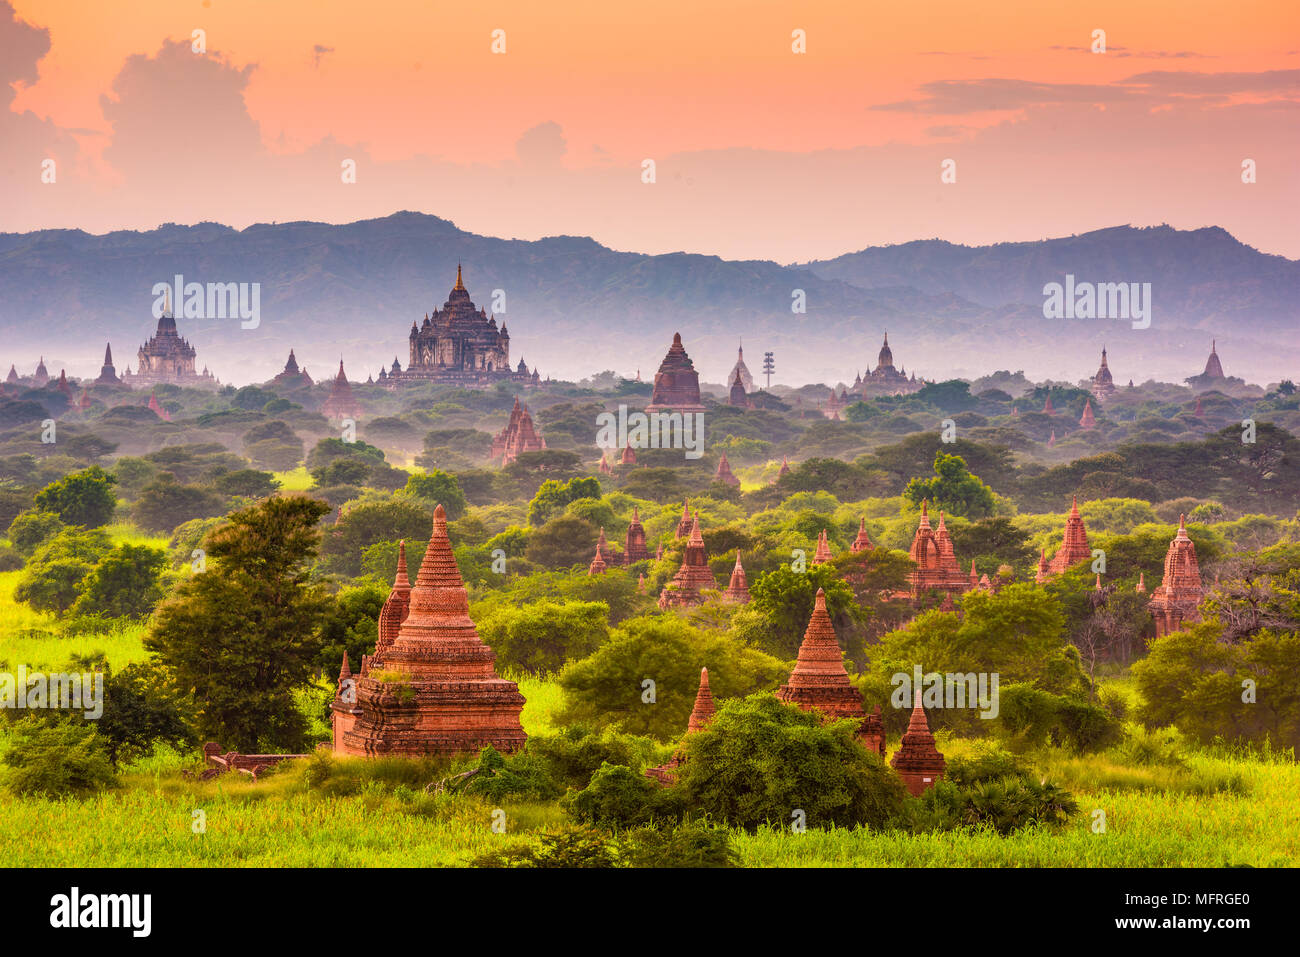 Bagan, Myanmar ancient temple ruins landscape in the archaeological zone at dusk. - Stock Image